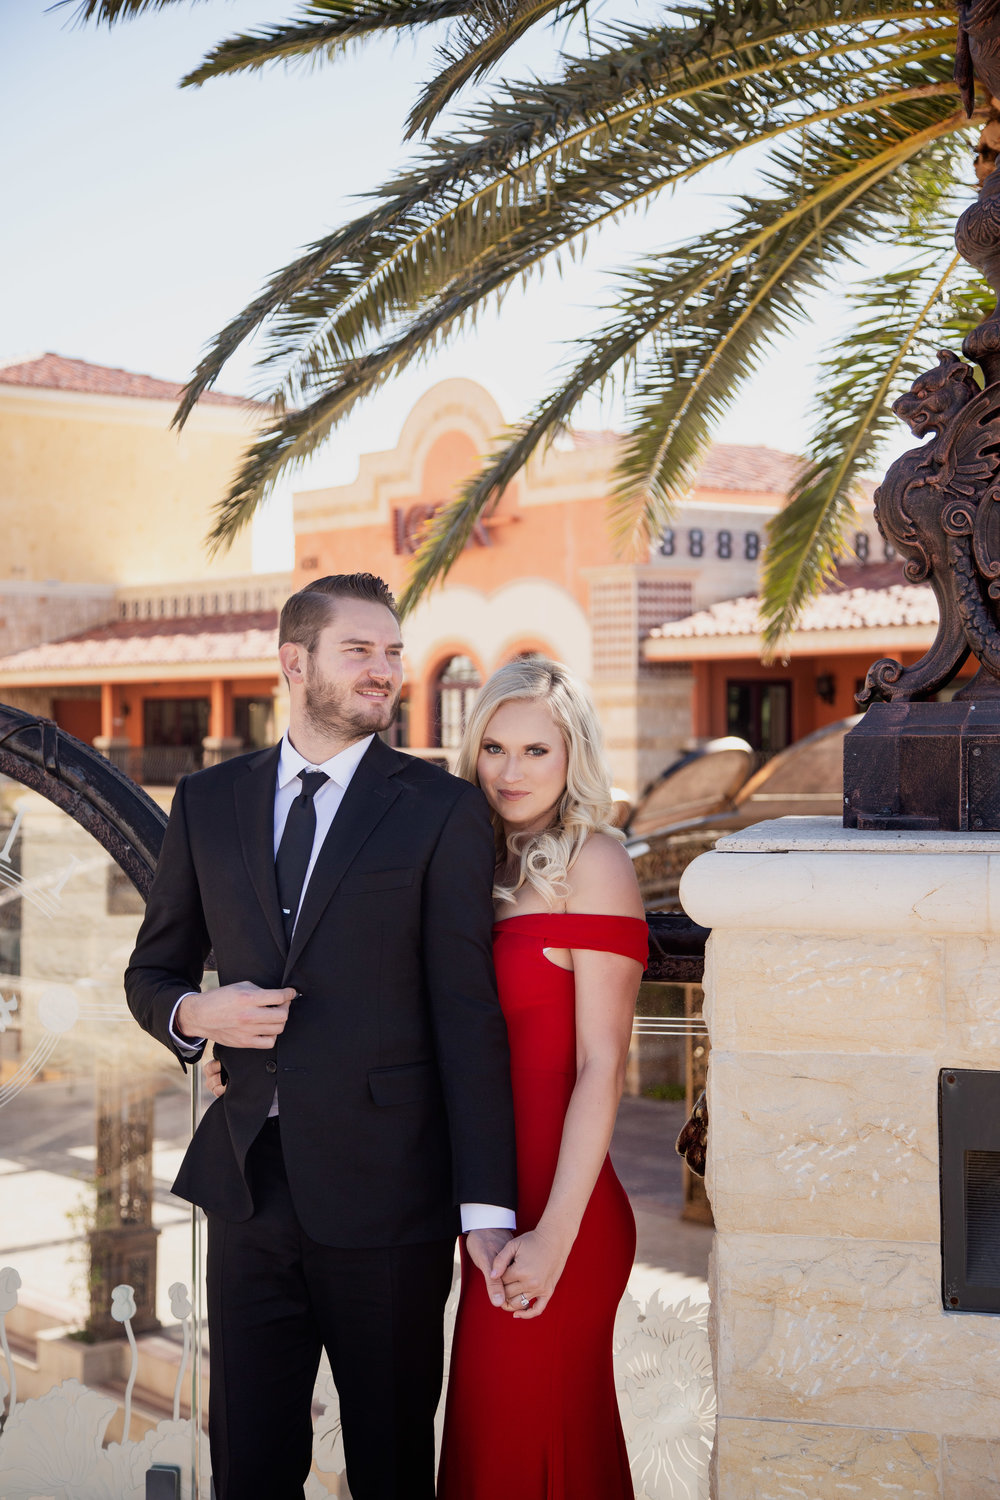 Meet Meagan and Kasey. Their Waldorf Astoria wedding will take place in the summer of 2019. www.andreaeppolitoevents.com. Wedding Planner Las Vegas Andrea Eppolito. Photo by Adam Frazier. Hair and Make Up by Glammed Up Las Vegas.